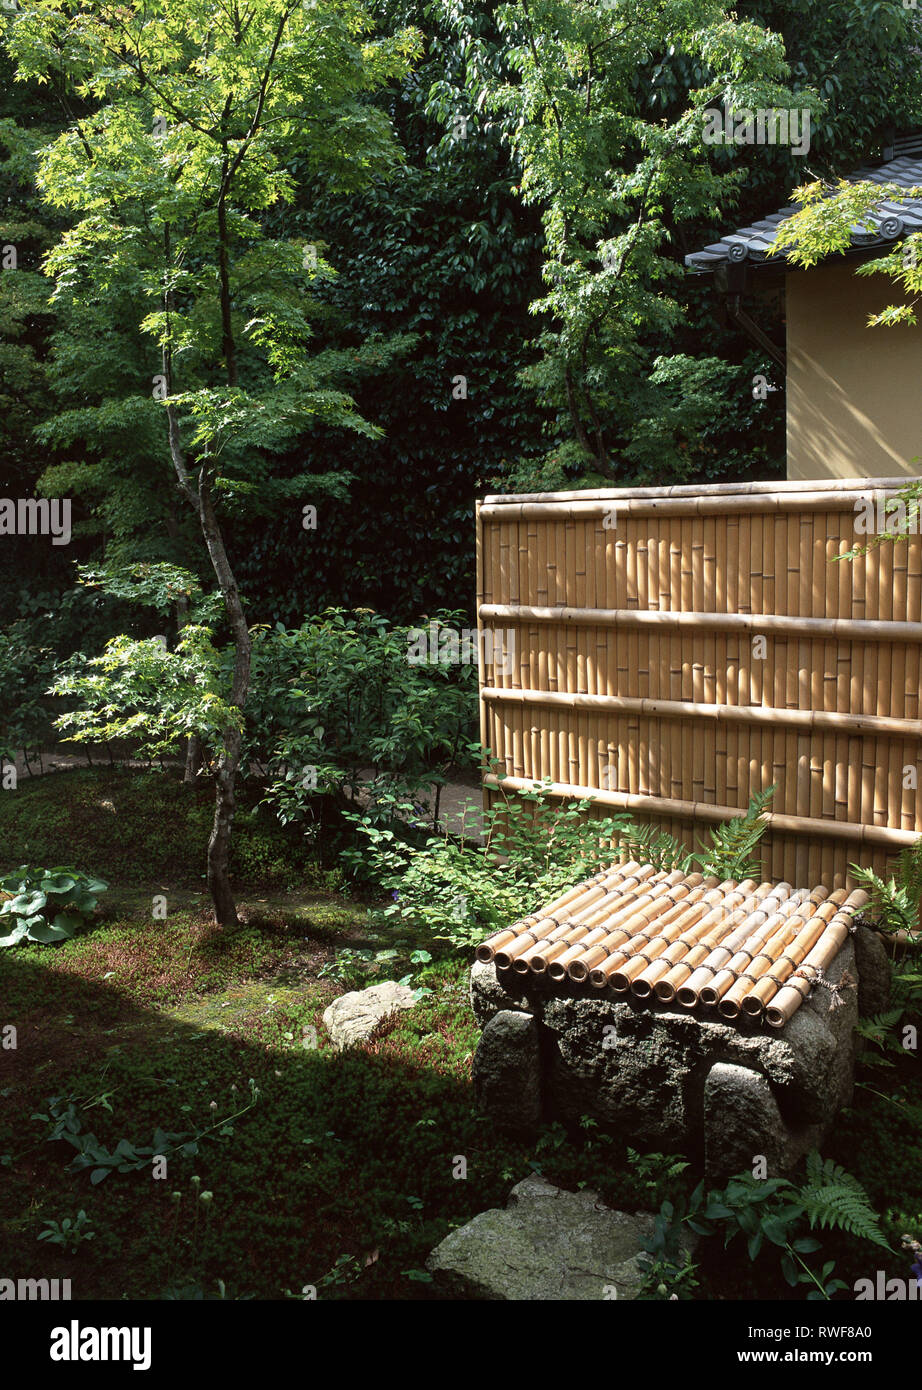 Japanese Bamboo Wall In Outdoor Garden With Trees And Plants Stock